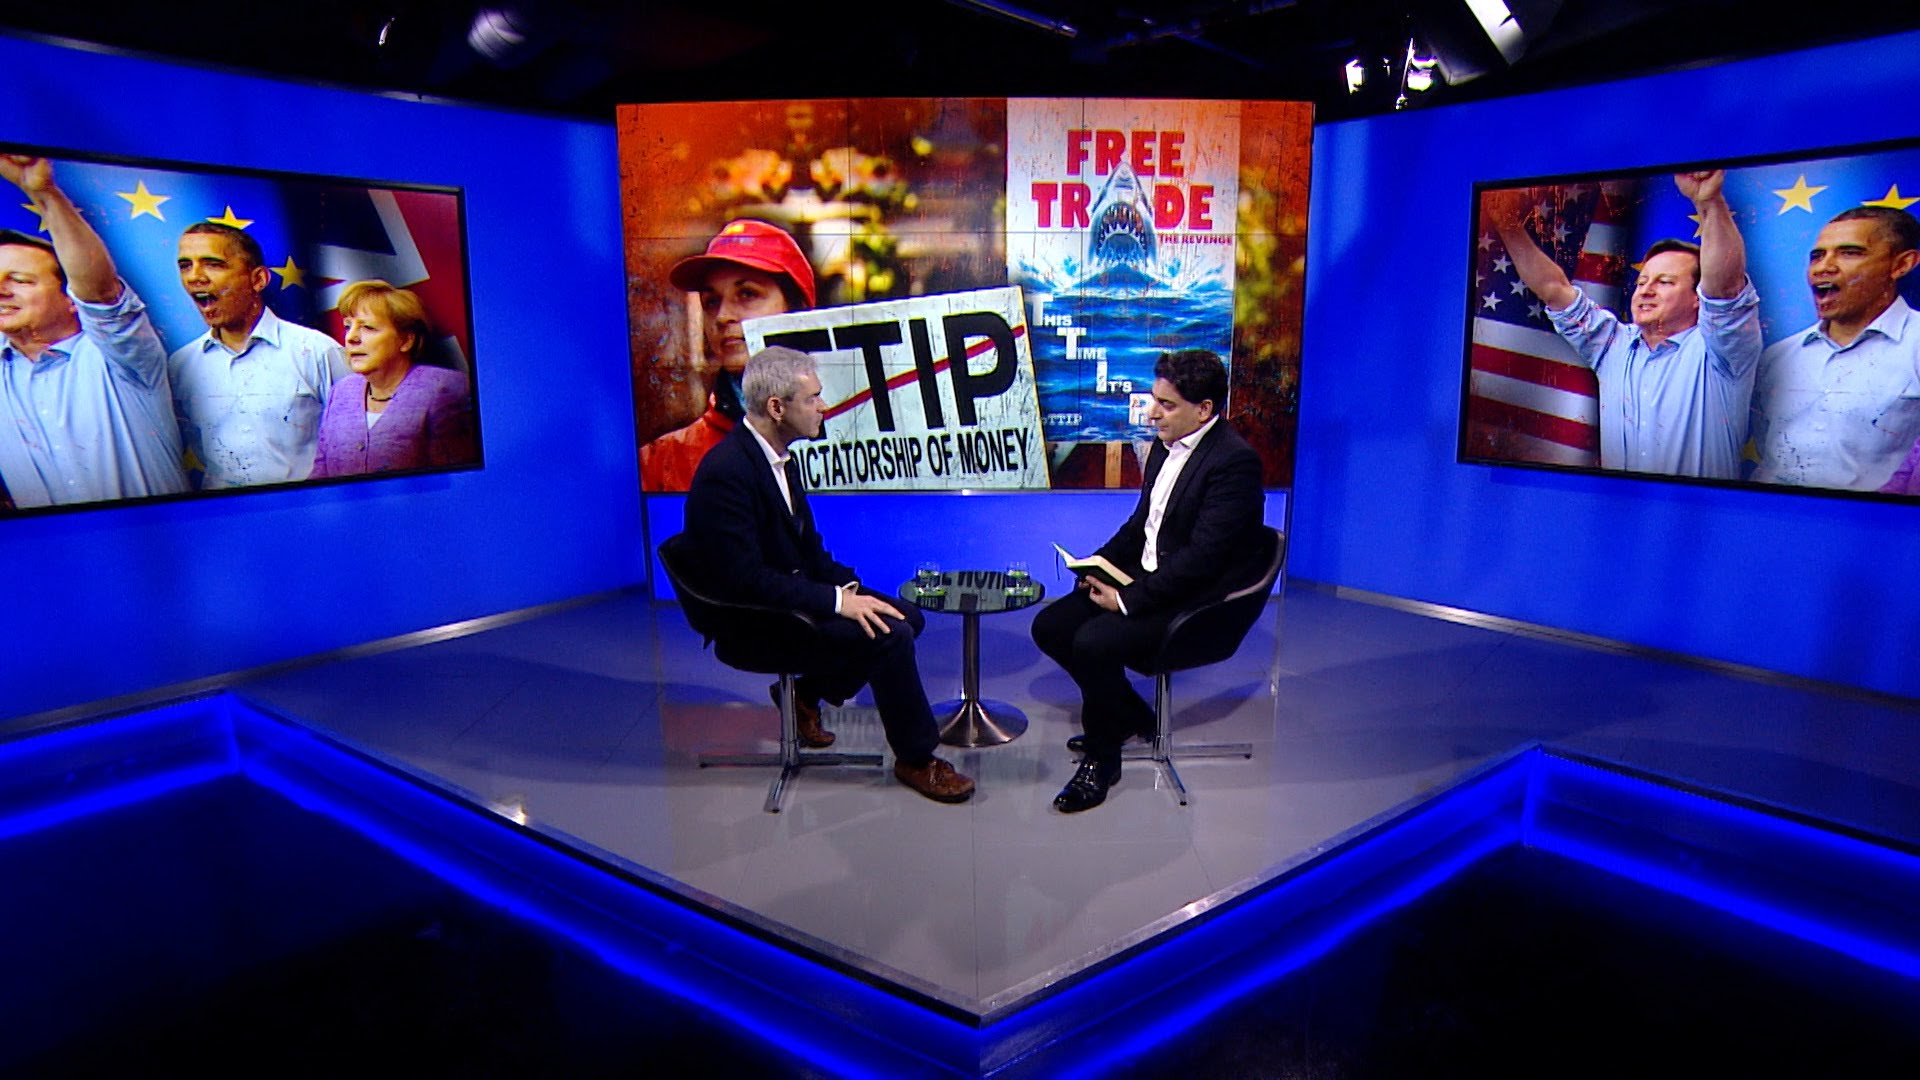 Going Underground: John Hilary talks #TTIP (Video)